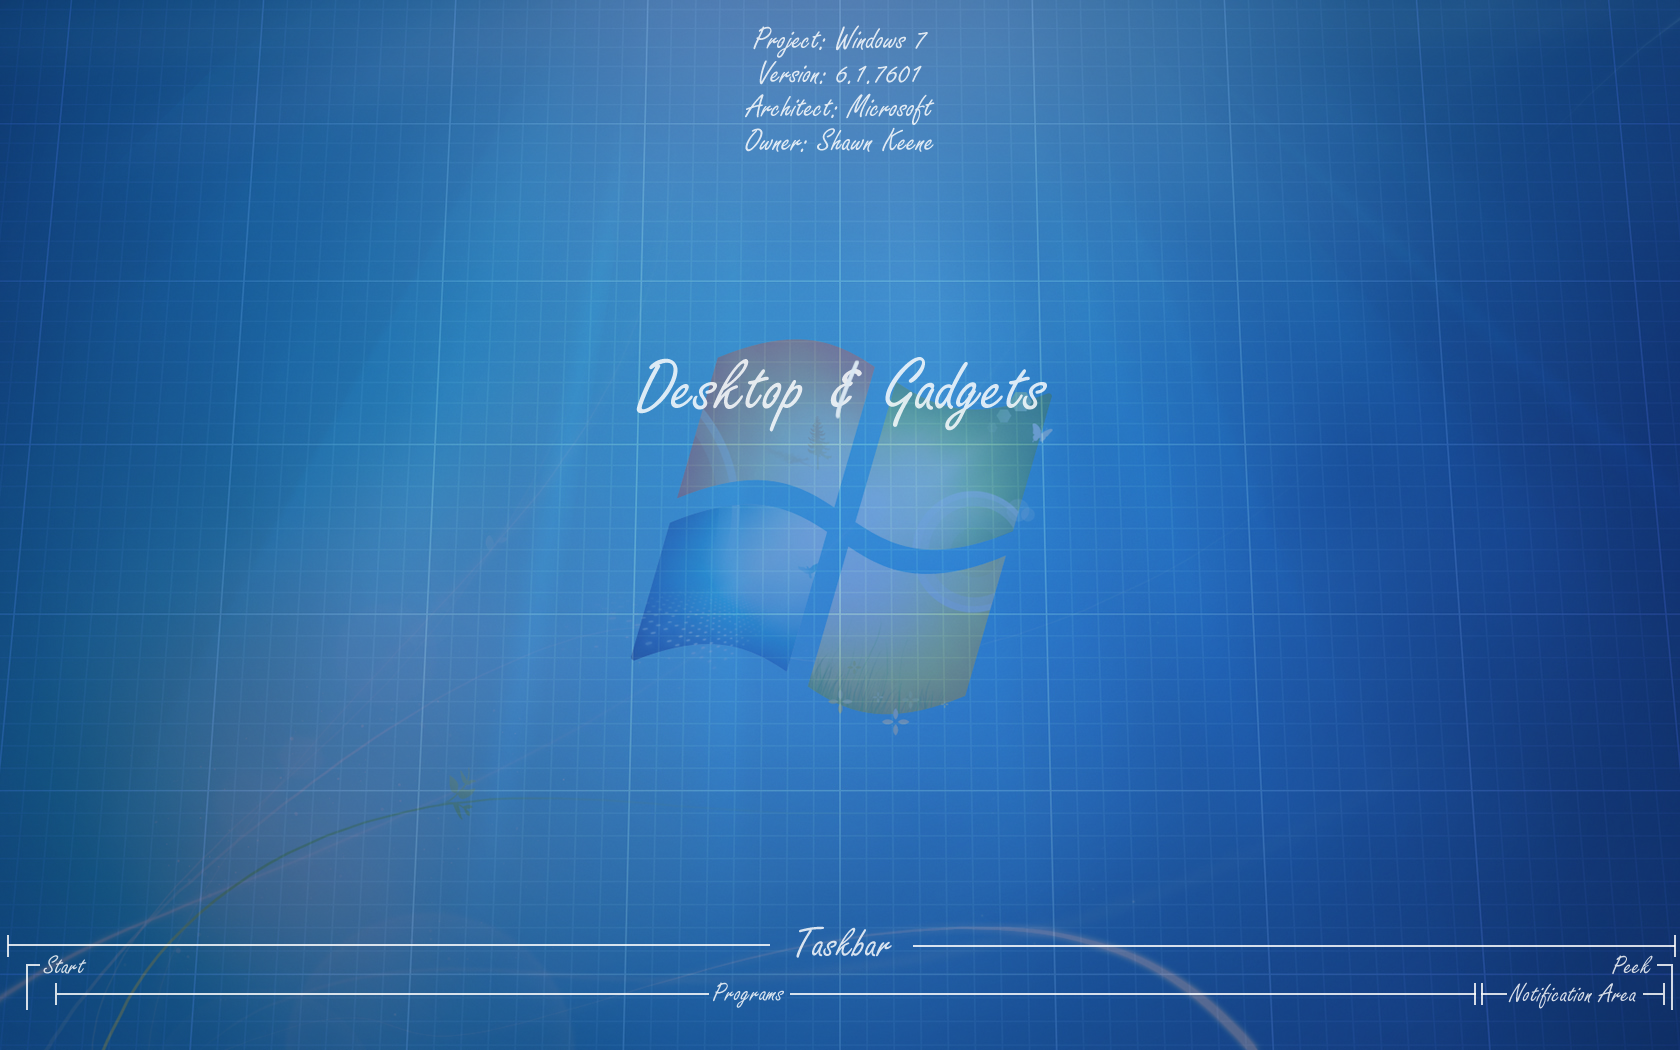 45 widescreen hdq wallpapers of blueprint for windows and mac systems